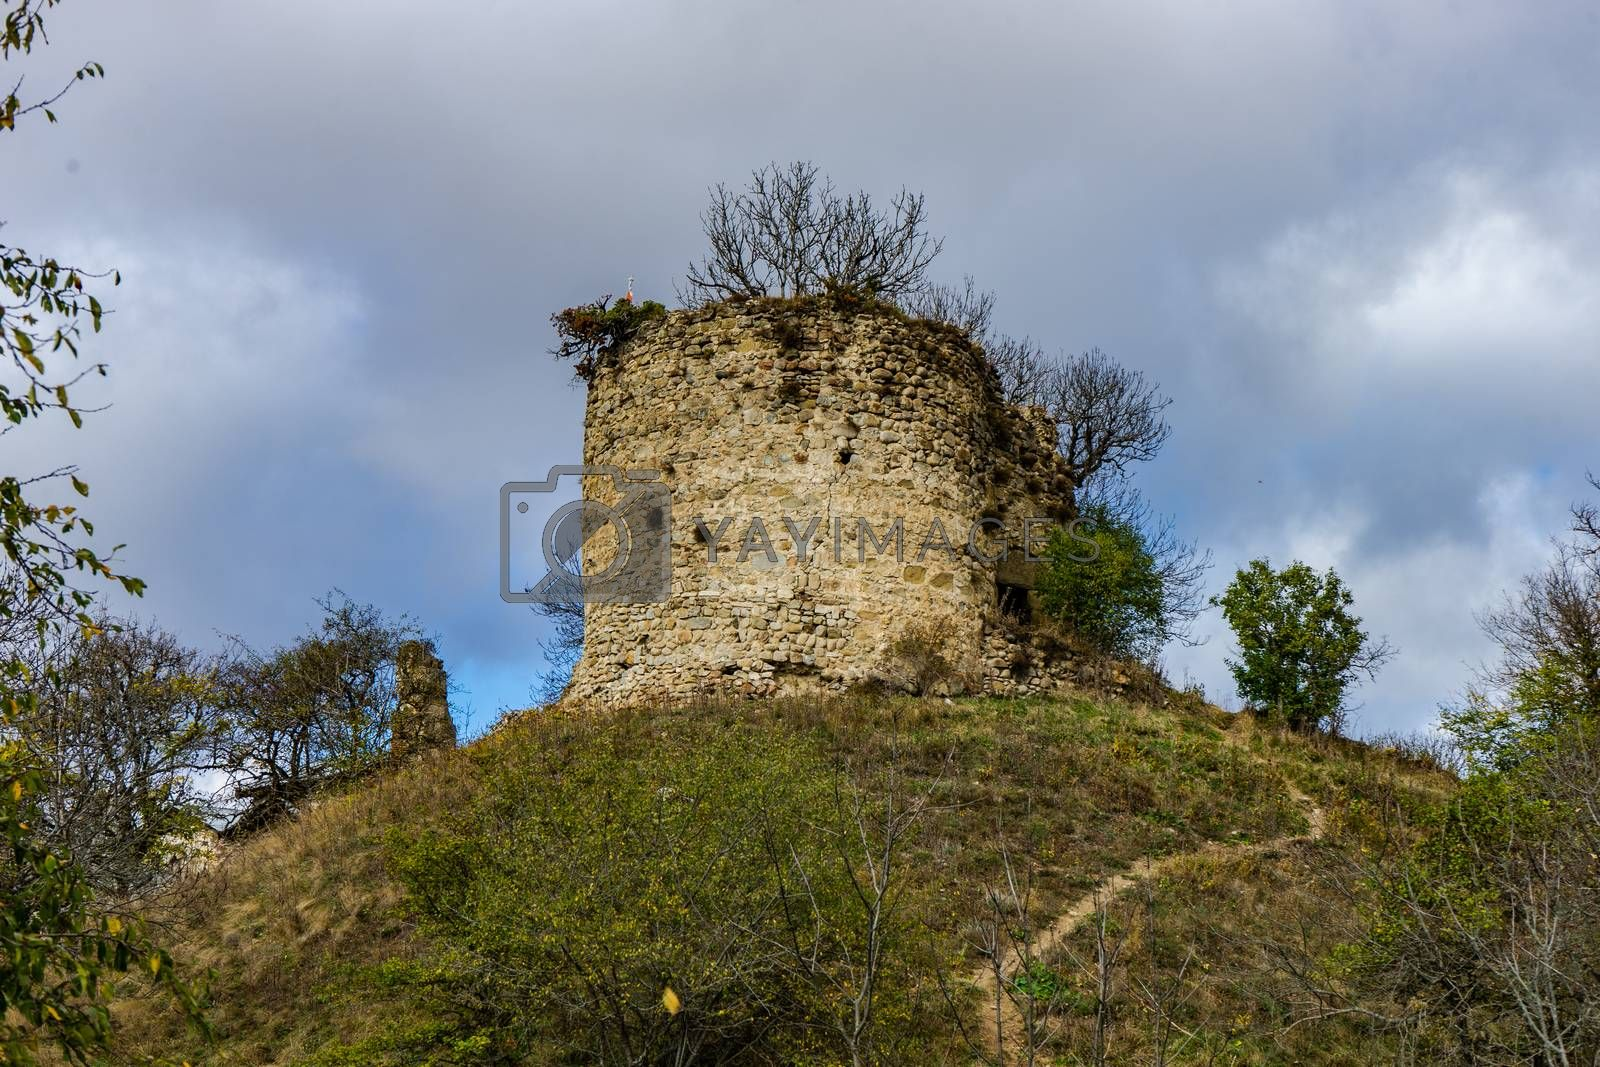 Famous Bochorma castle town ruins in Caucasus mountain in Georgia